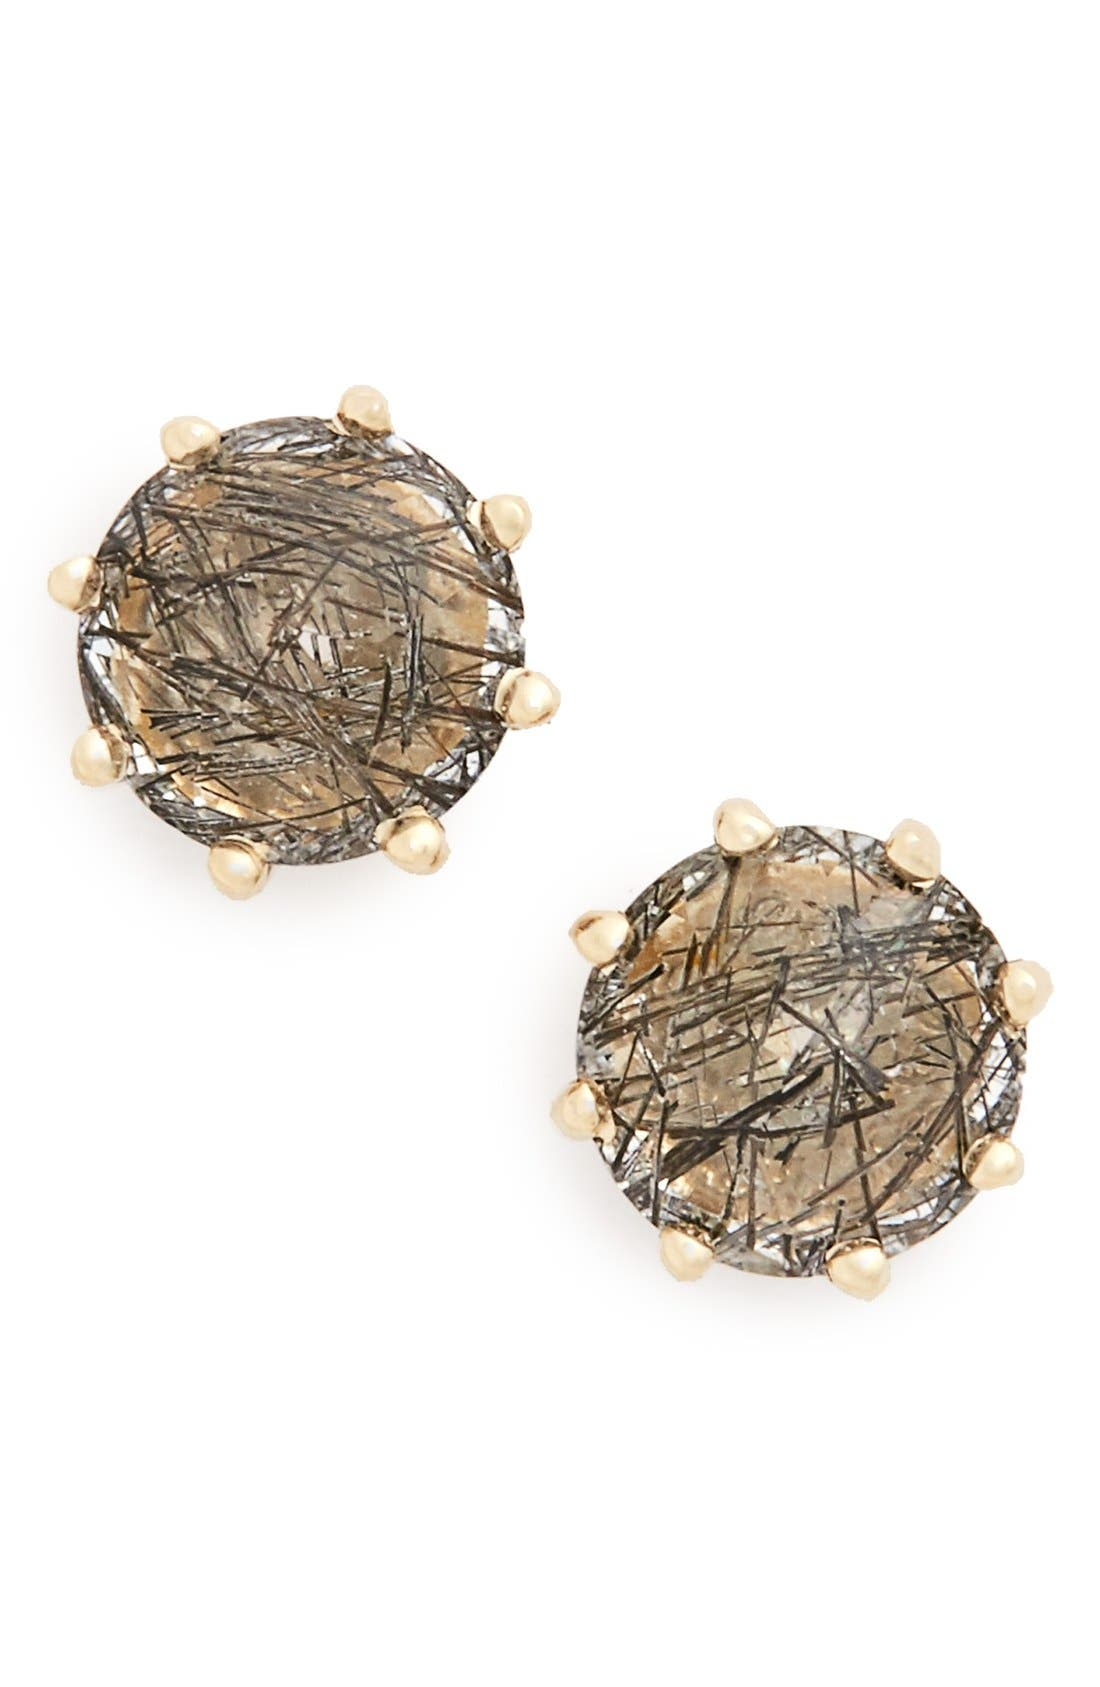 Alternate Image 1 Selected - Anna Sheffield 'Eleanor' Black Rutilated Quartz Stud Earrings